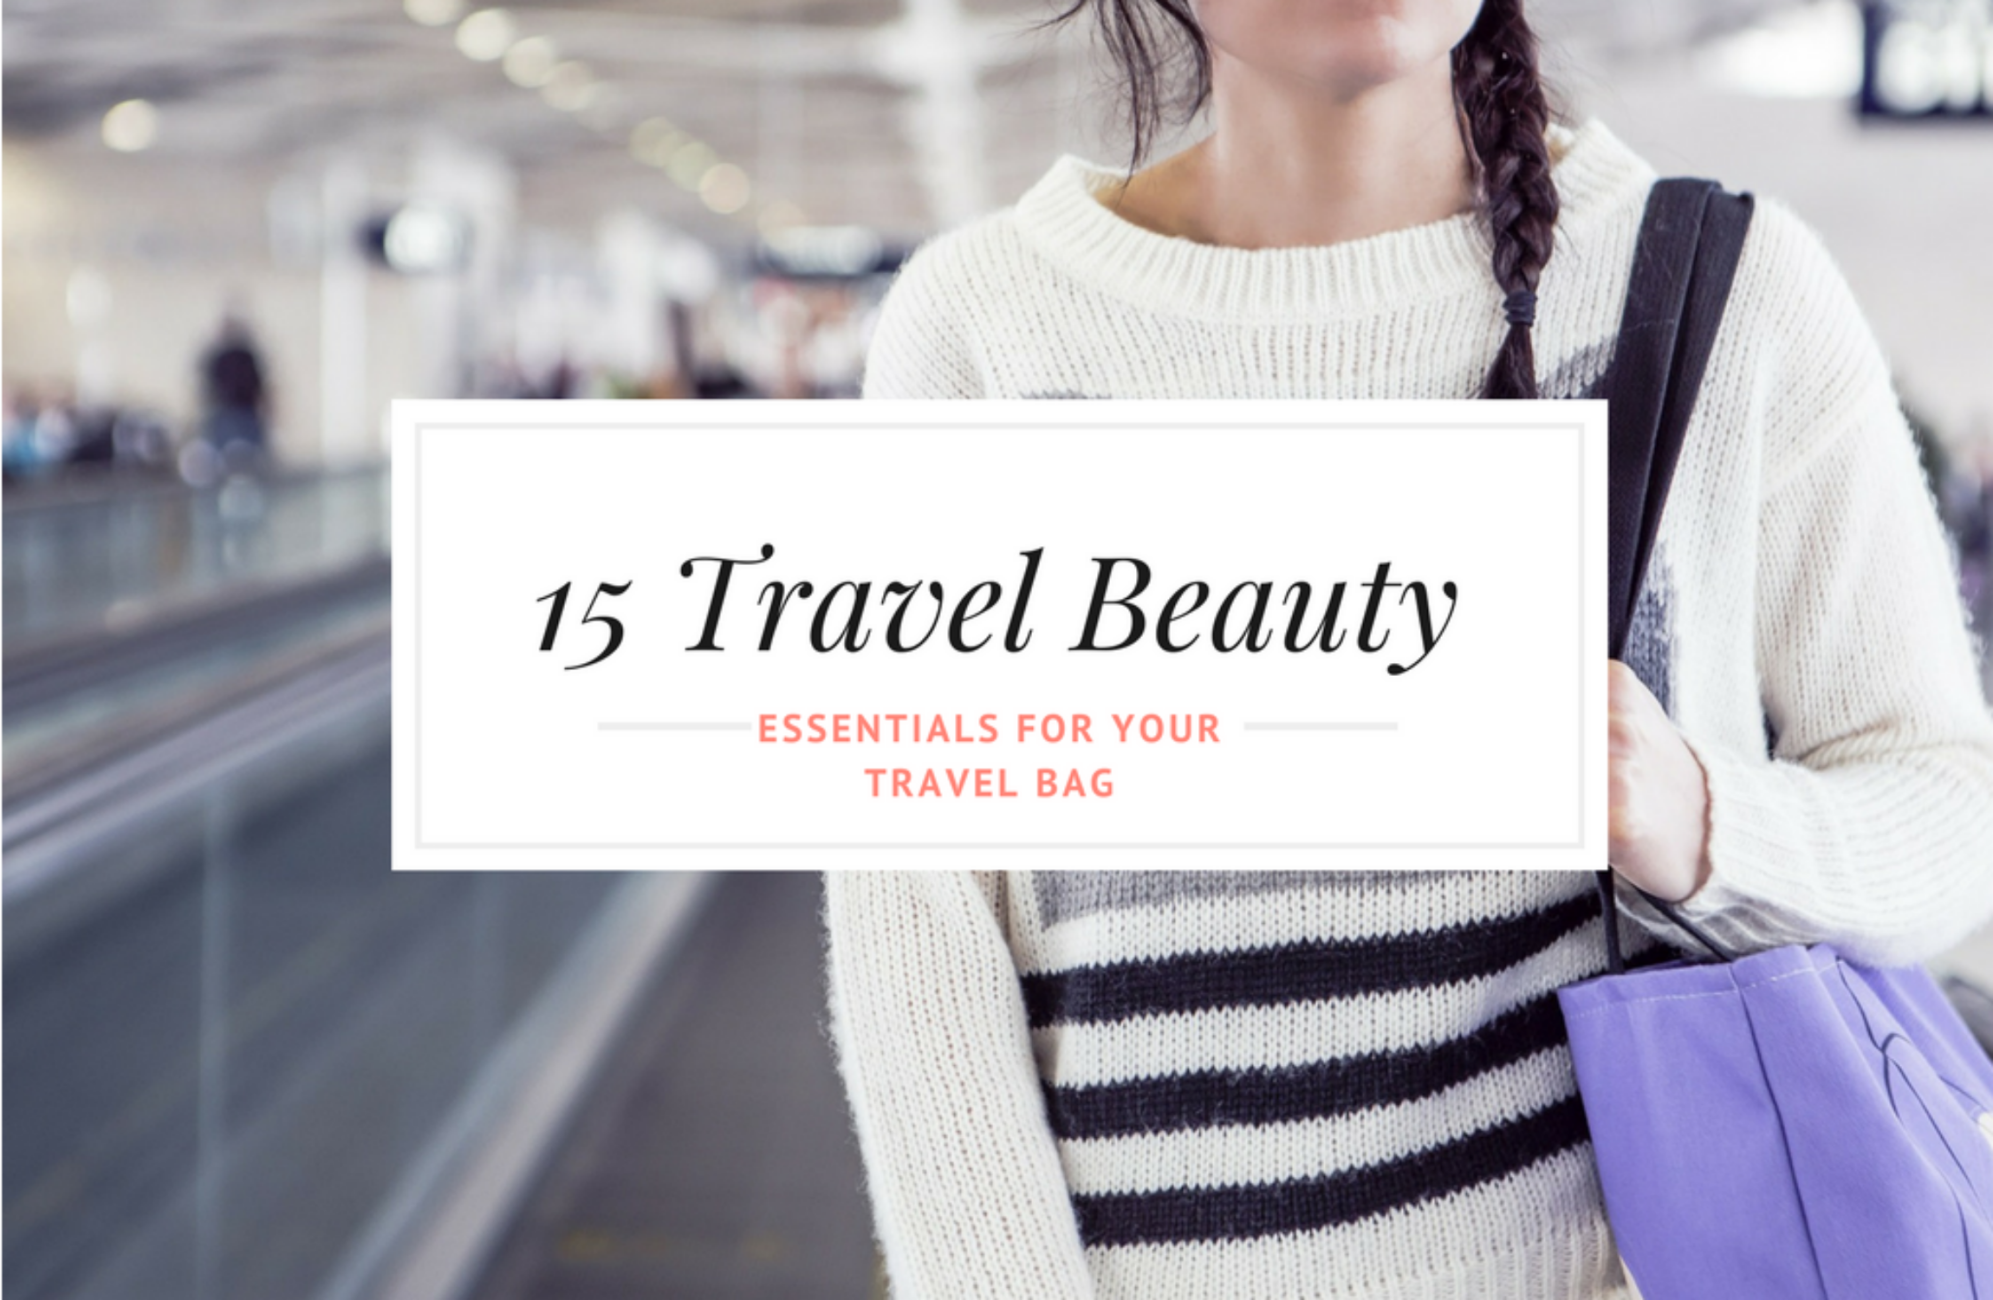 Travel Beauty Essentials for this summer 2017